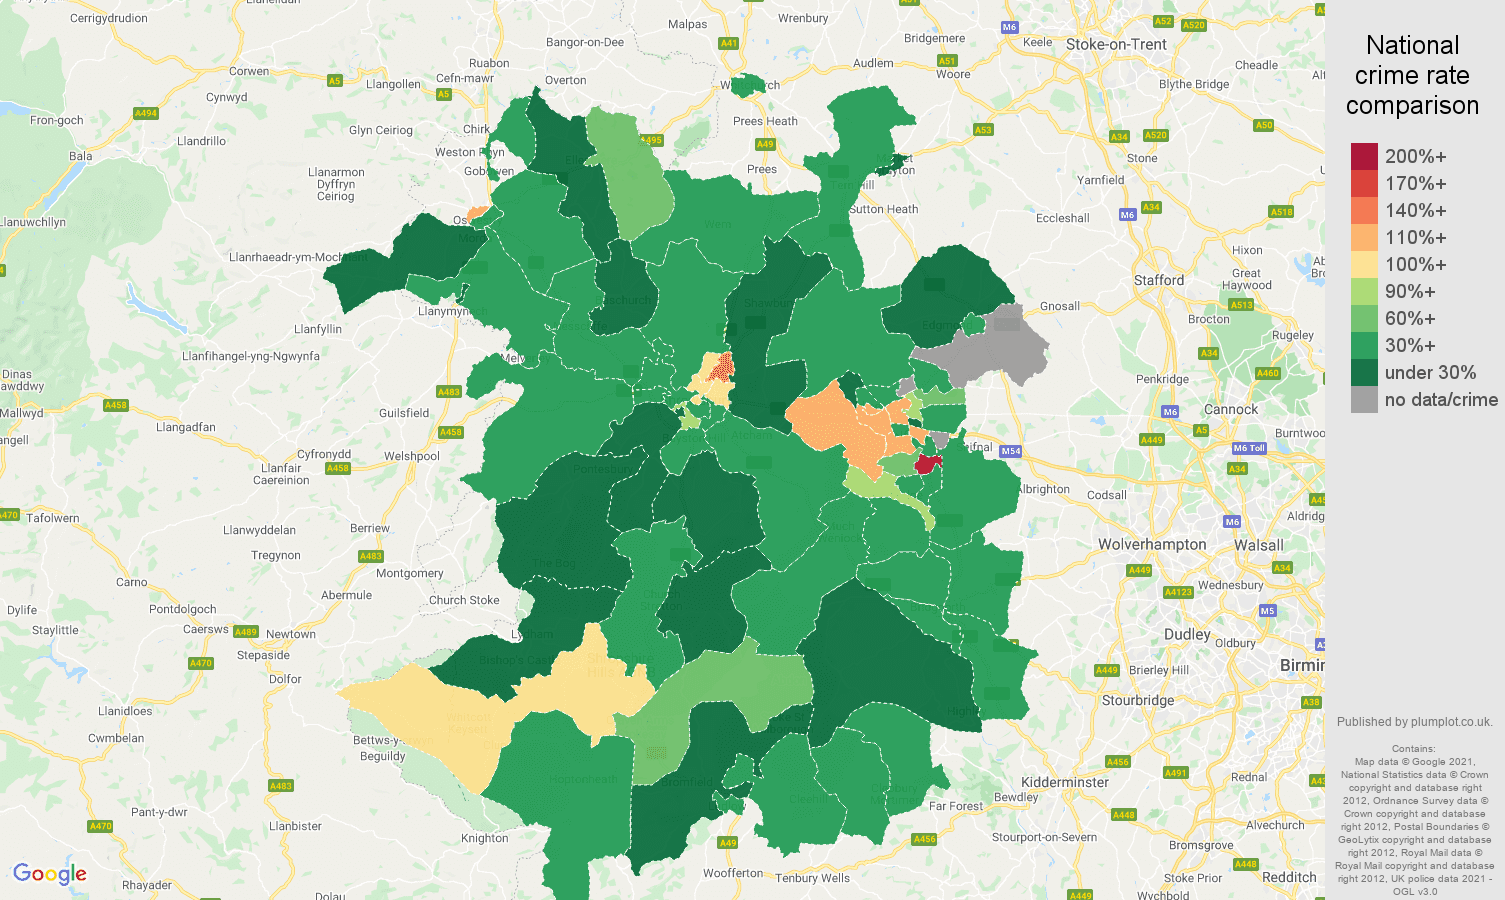 Shropshire drugs crime rate comparison map